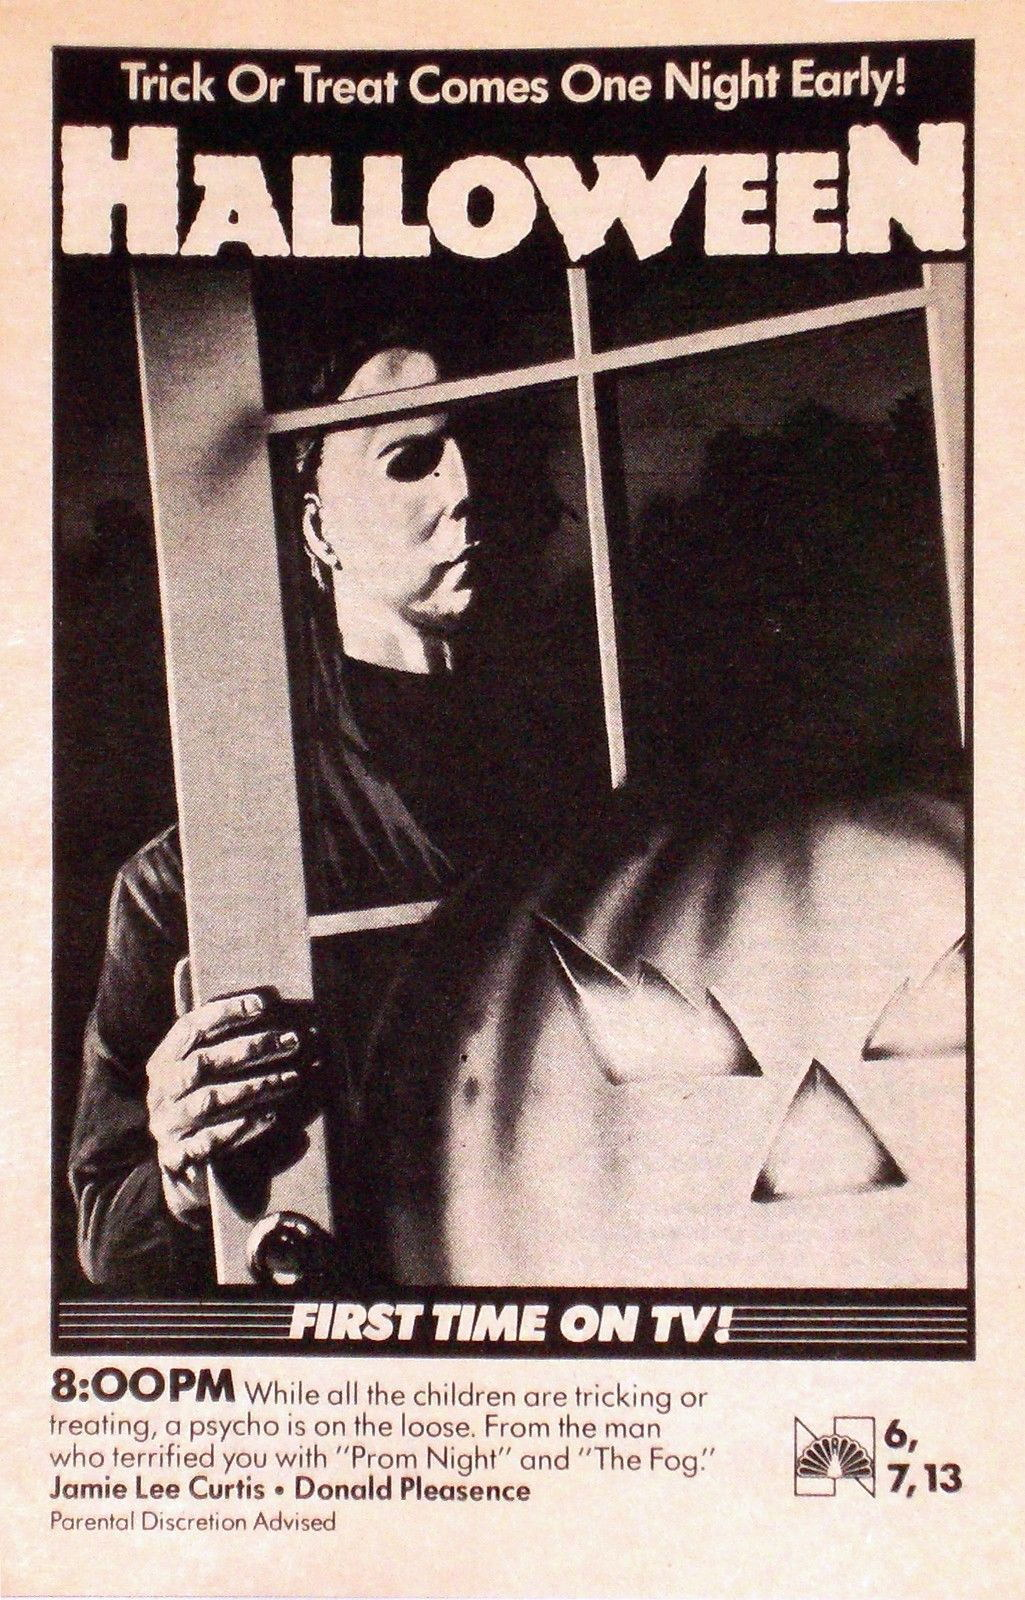 72219-HALLOWEEN-Movie-Michael-Myers-John-Carpenter-Wall-Print-Poster-Affiche